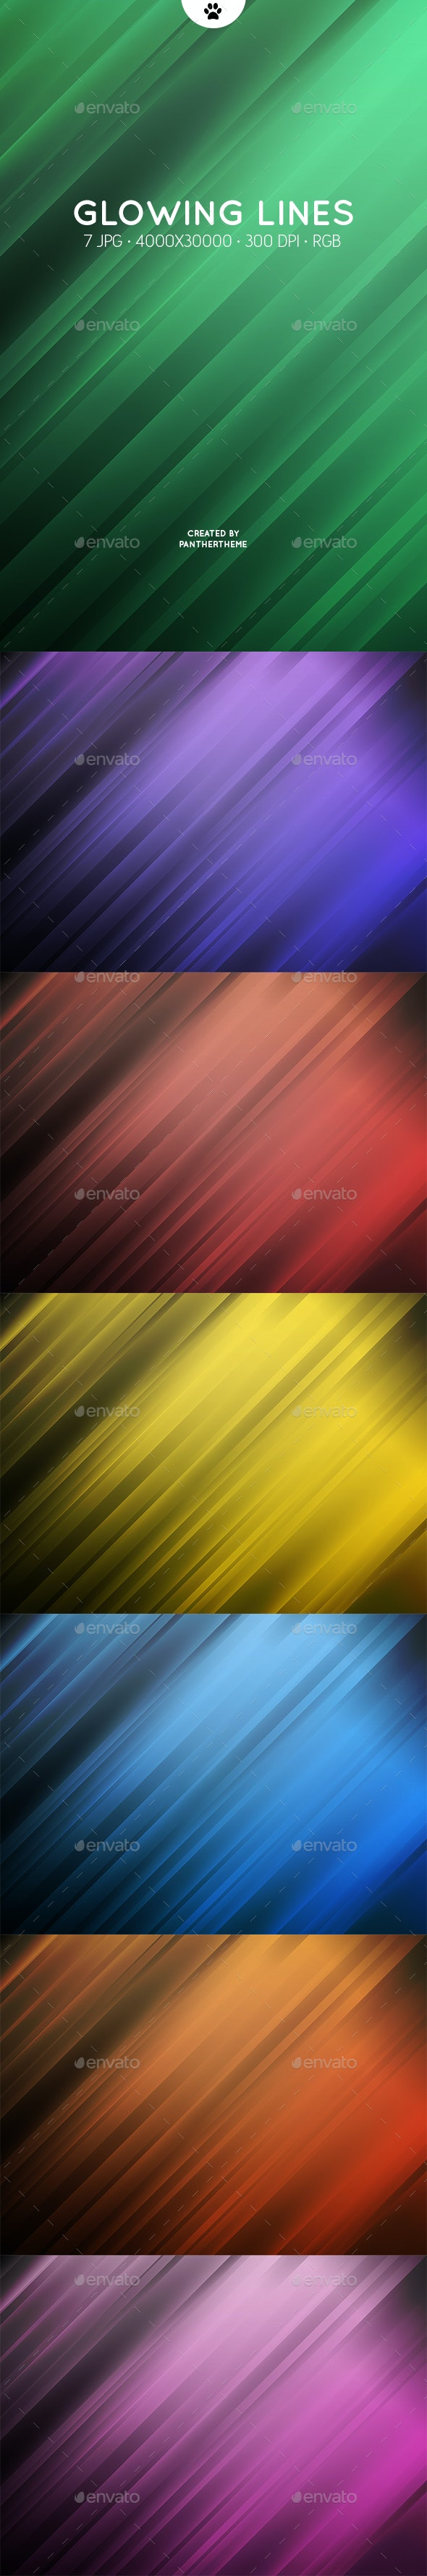 Glowing Lines Backgrounds - Abstract Backgrounds